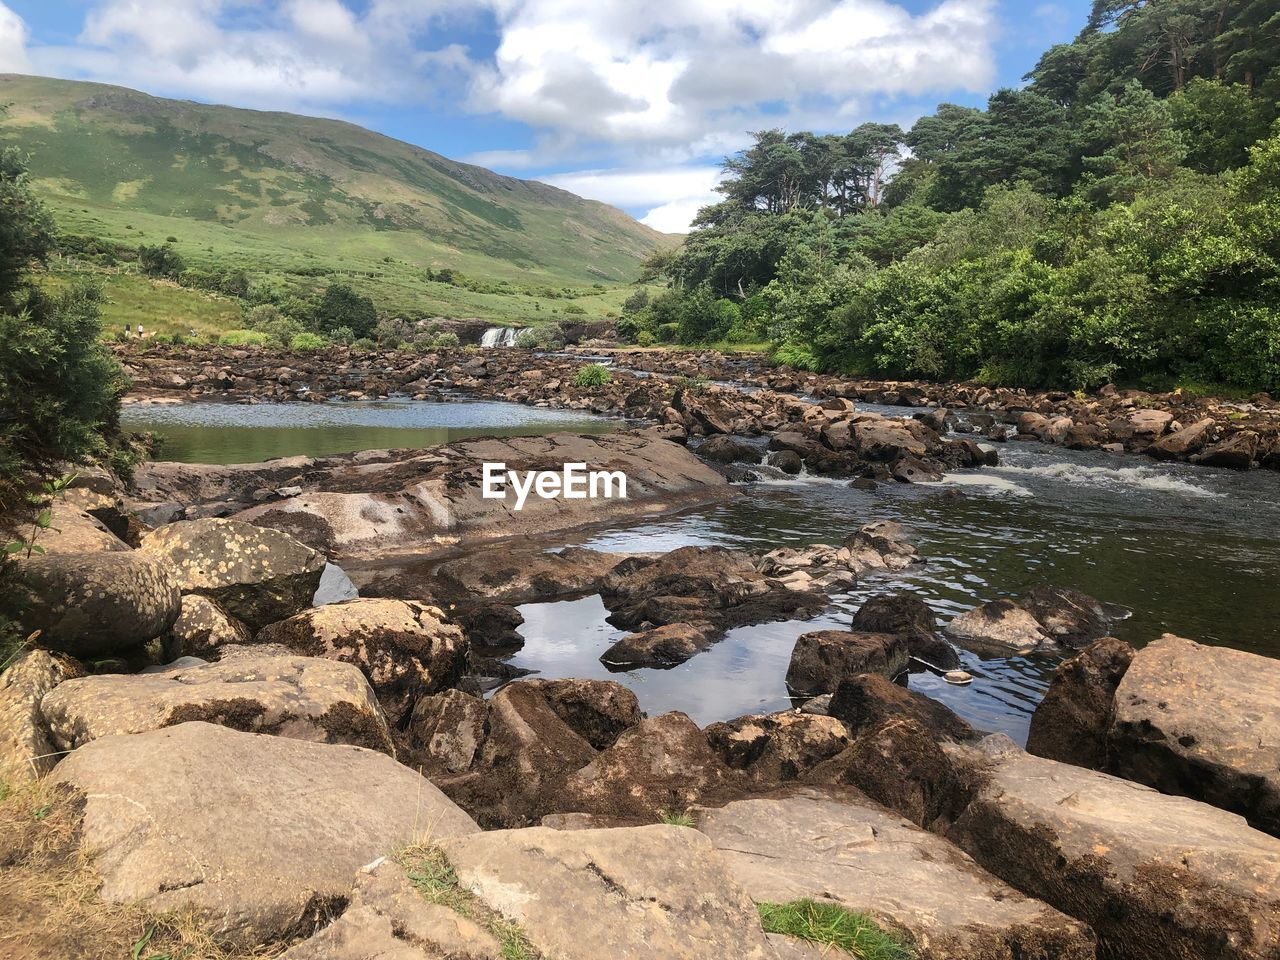 water, rock, beauty in nature, nature, sky, cloud - sky, rock - object, solid, environment, scenics - nature, tree, day, tranquility, river, tranquil scene, land, landscape, no people, mountain, outdoors, flowing water, flowing